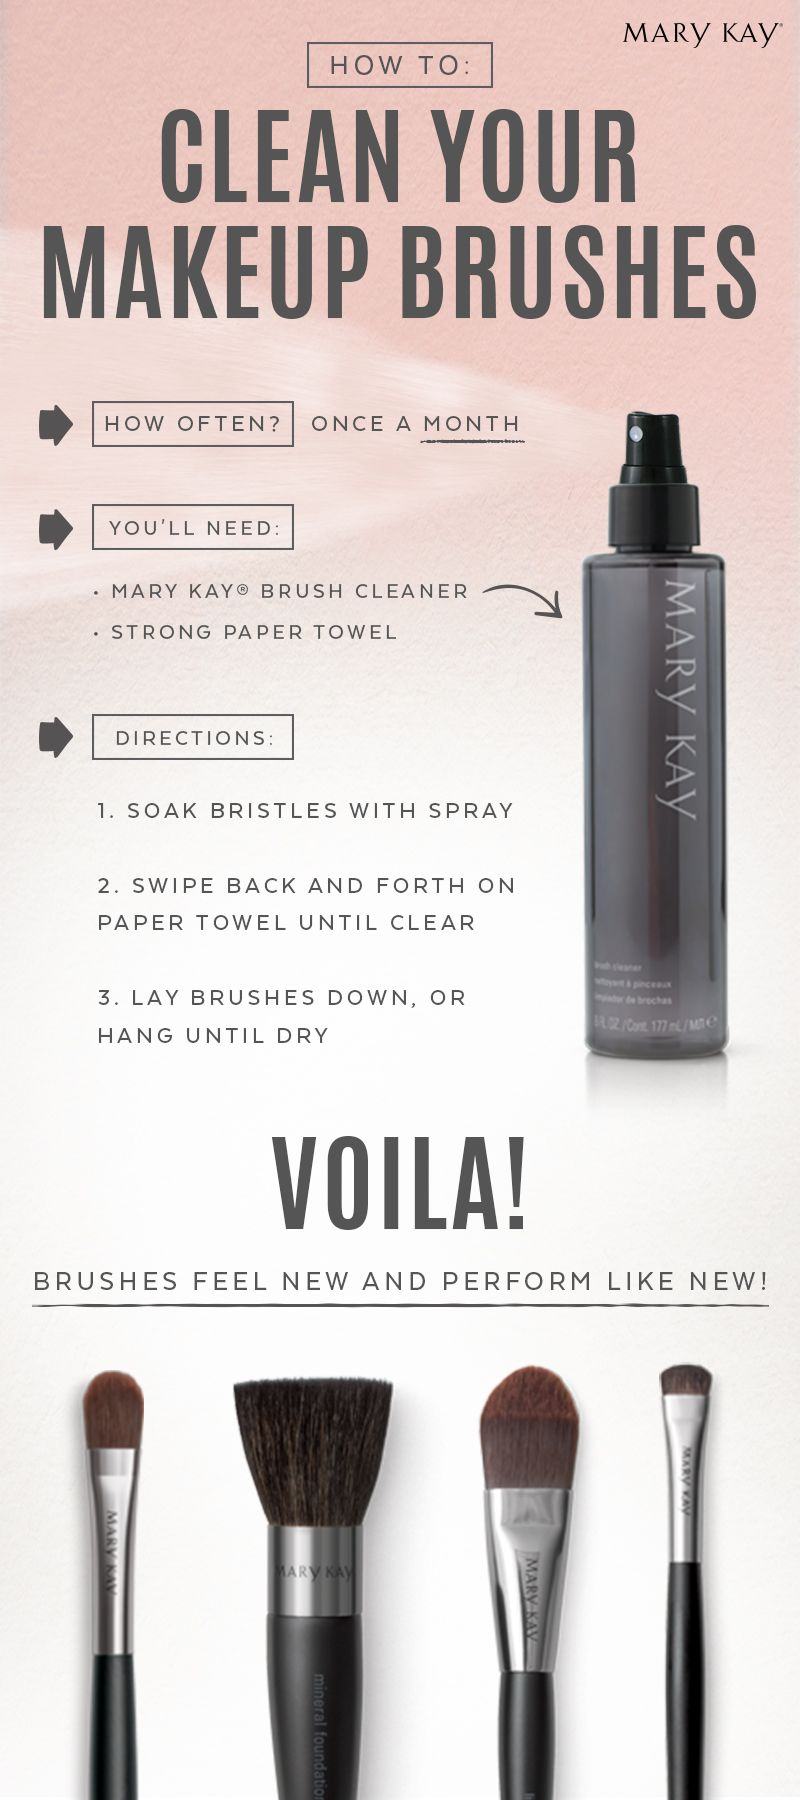 Wondering how to clean your makeup brushes? We